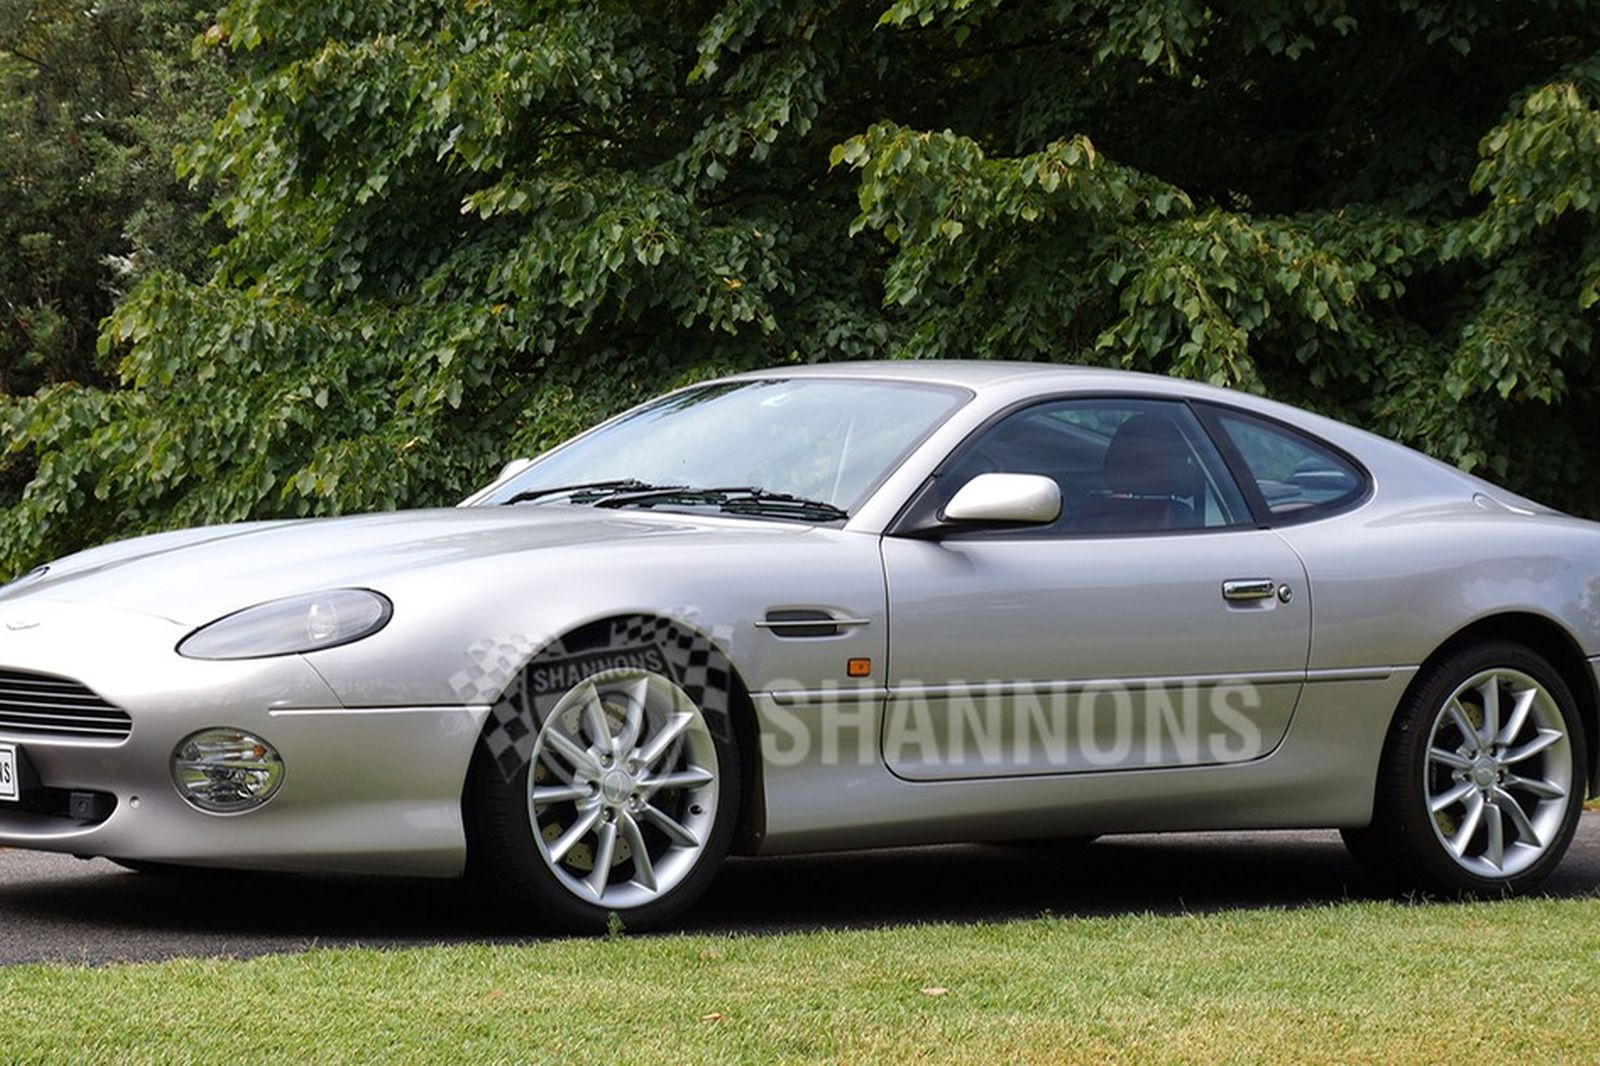 Sold: Aston Martin DB7 Vantage V12 Coupe Auctions